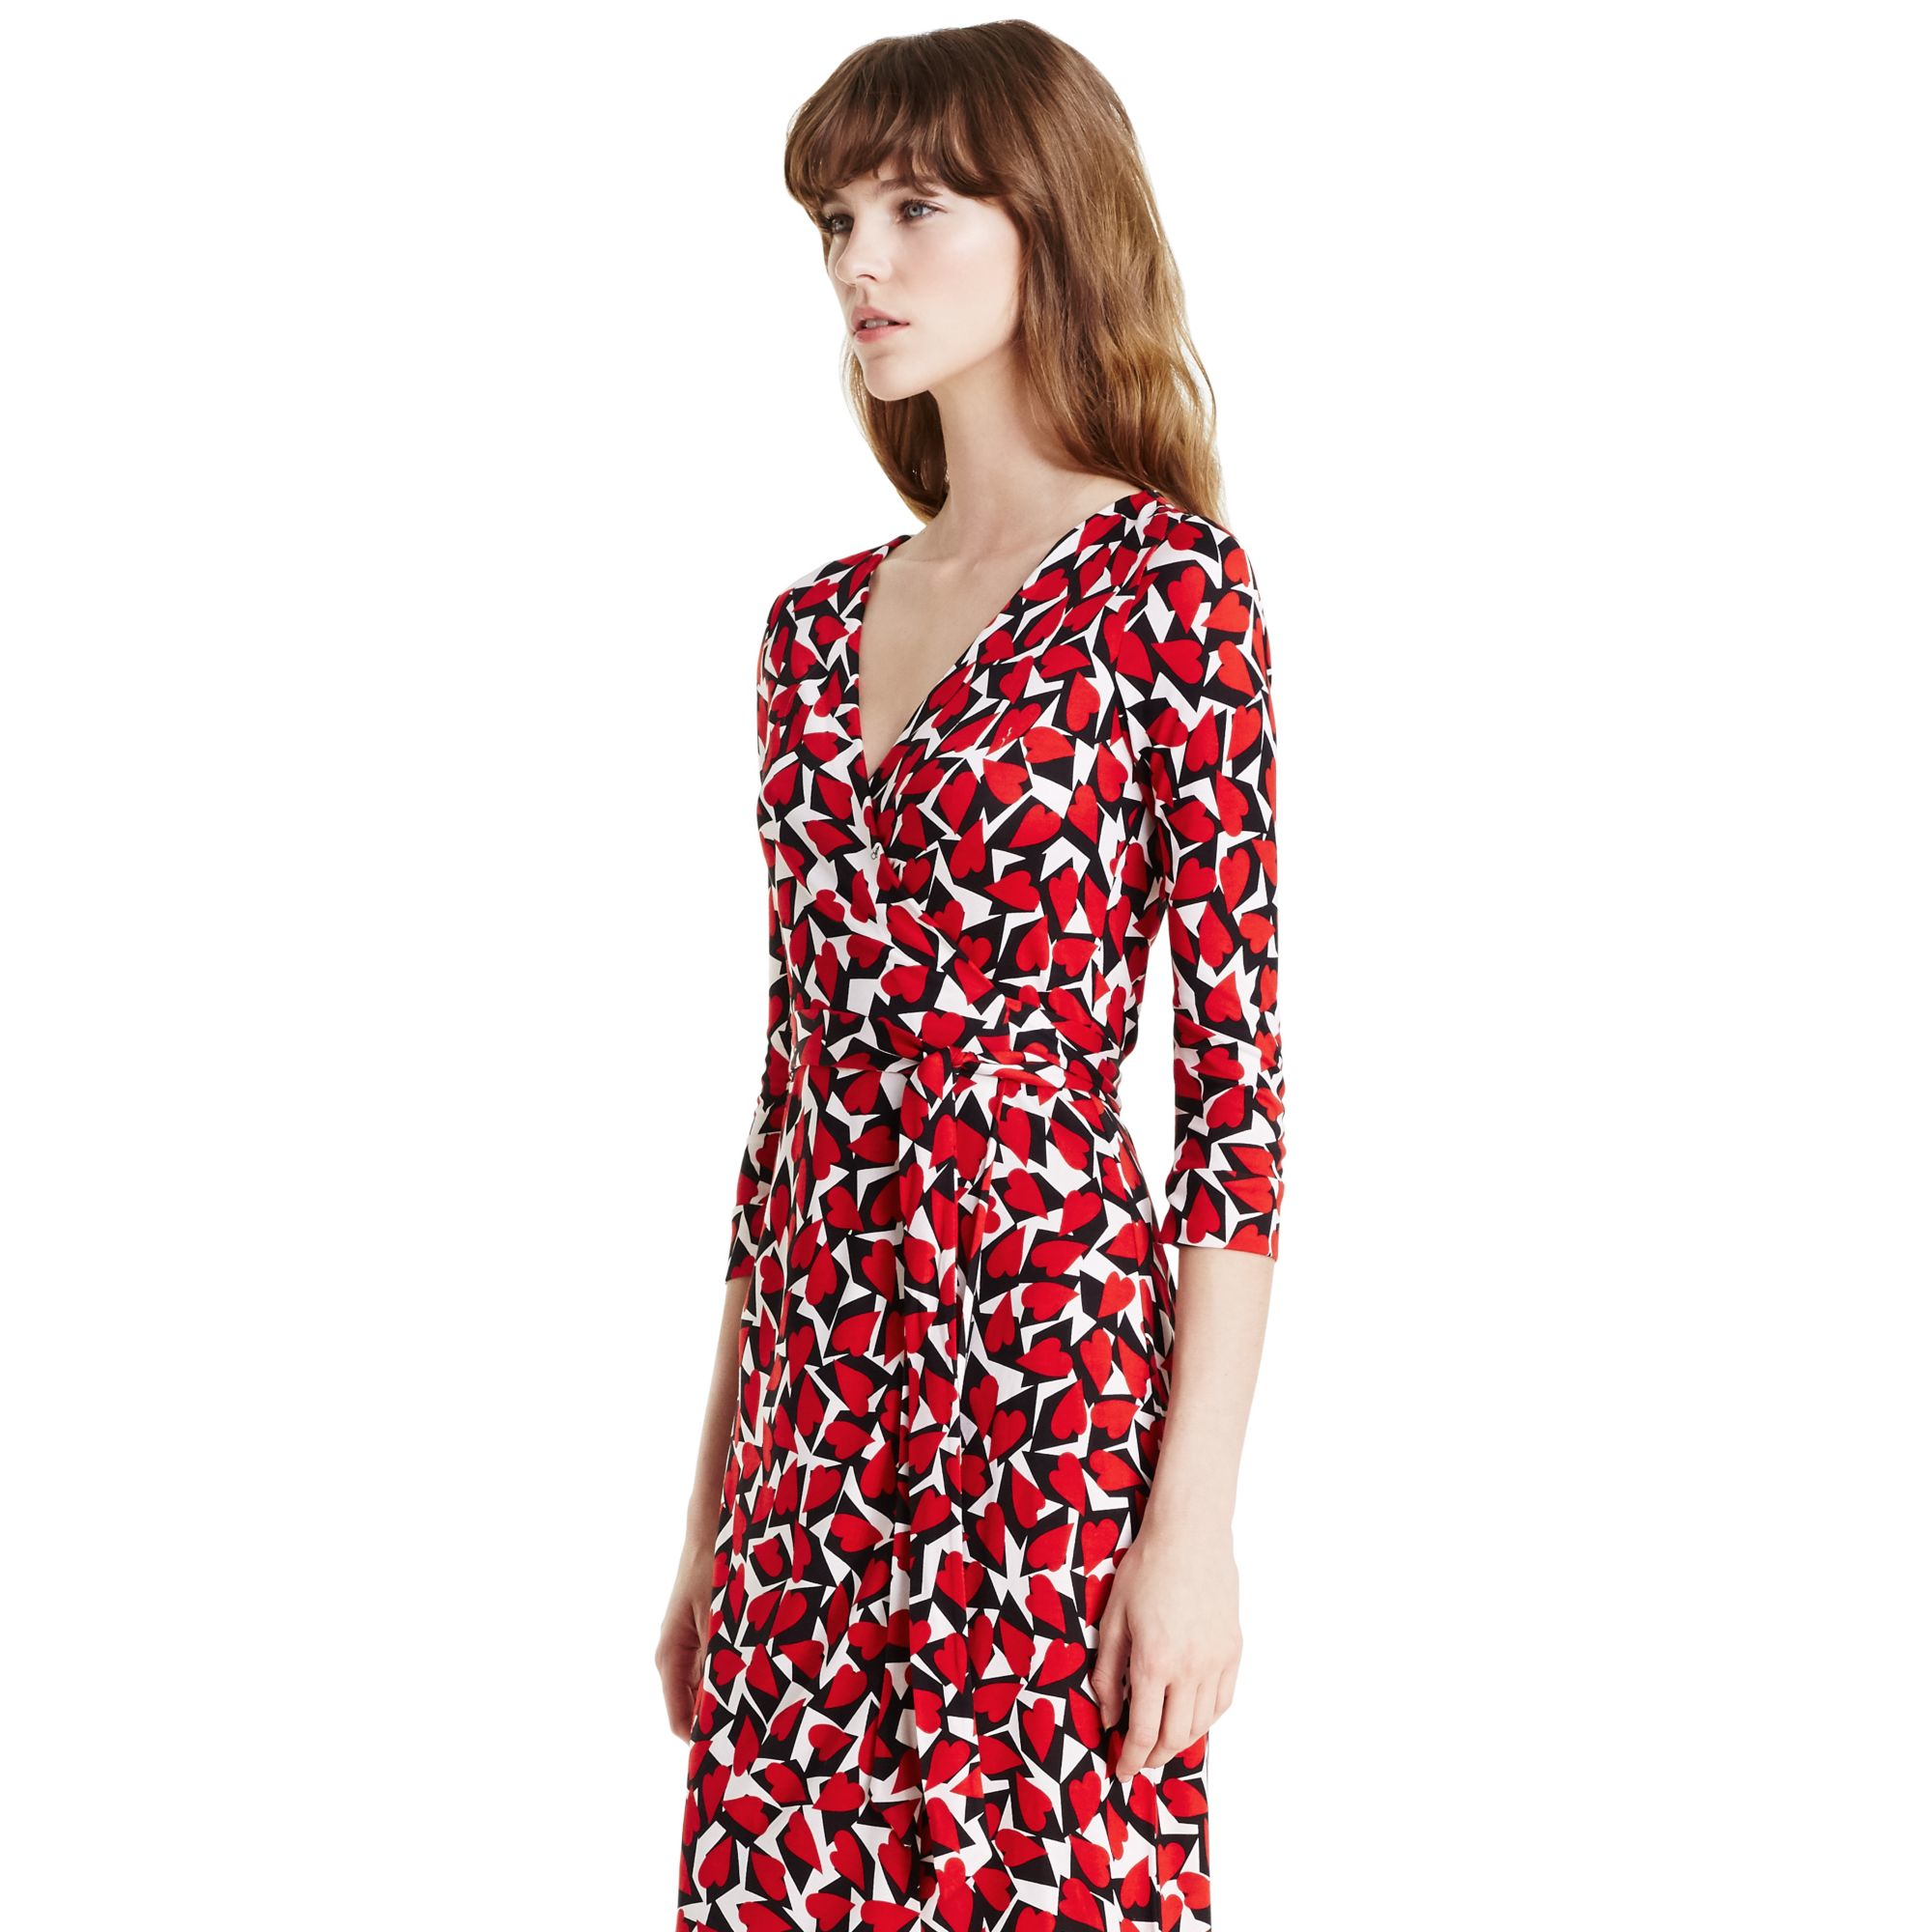 Outlet Discount Sale Discount Cheapest New Julian floral silk dress Diane Von Fürstenberg Find Great Cheap Price Sale Brand New Unisex j0CyD